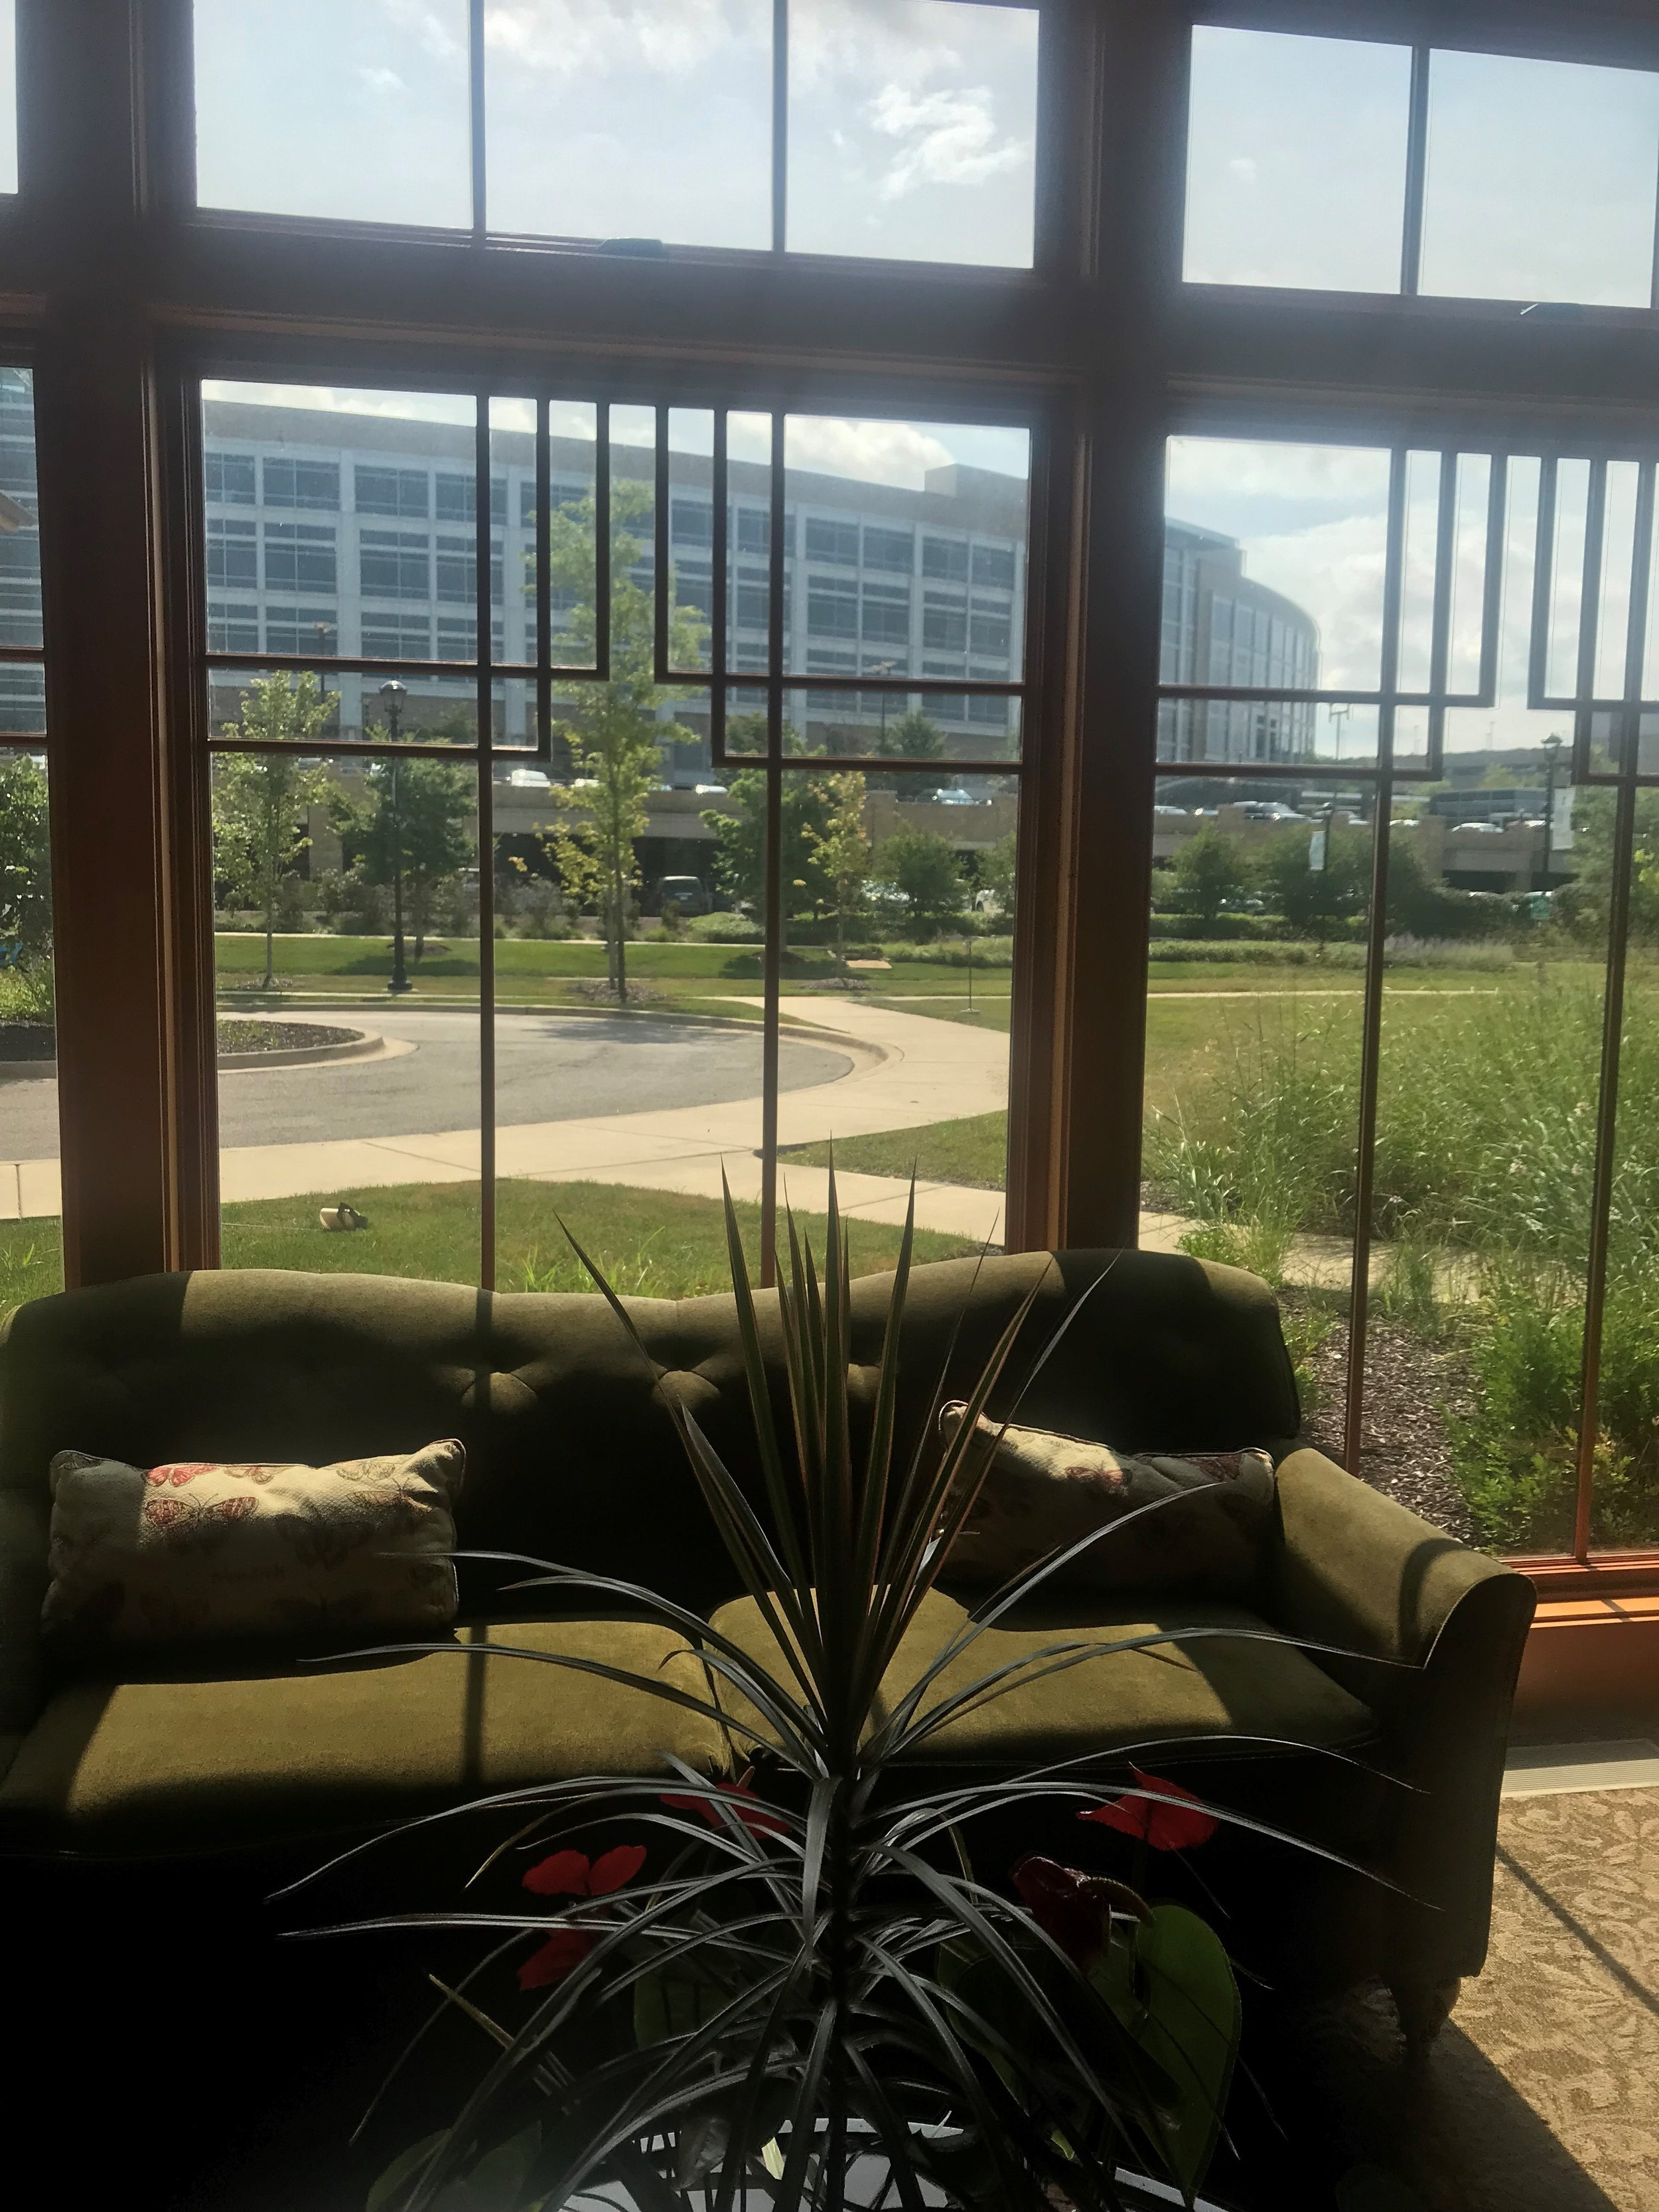 Central DuPage Hospital is visible through the windows of the Ronald McDonald House's great room